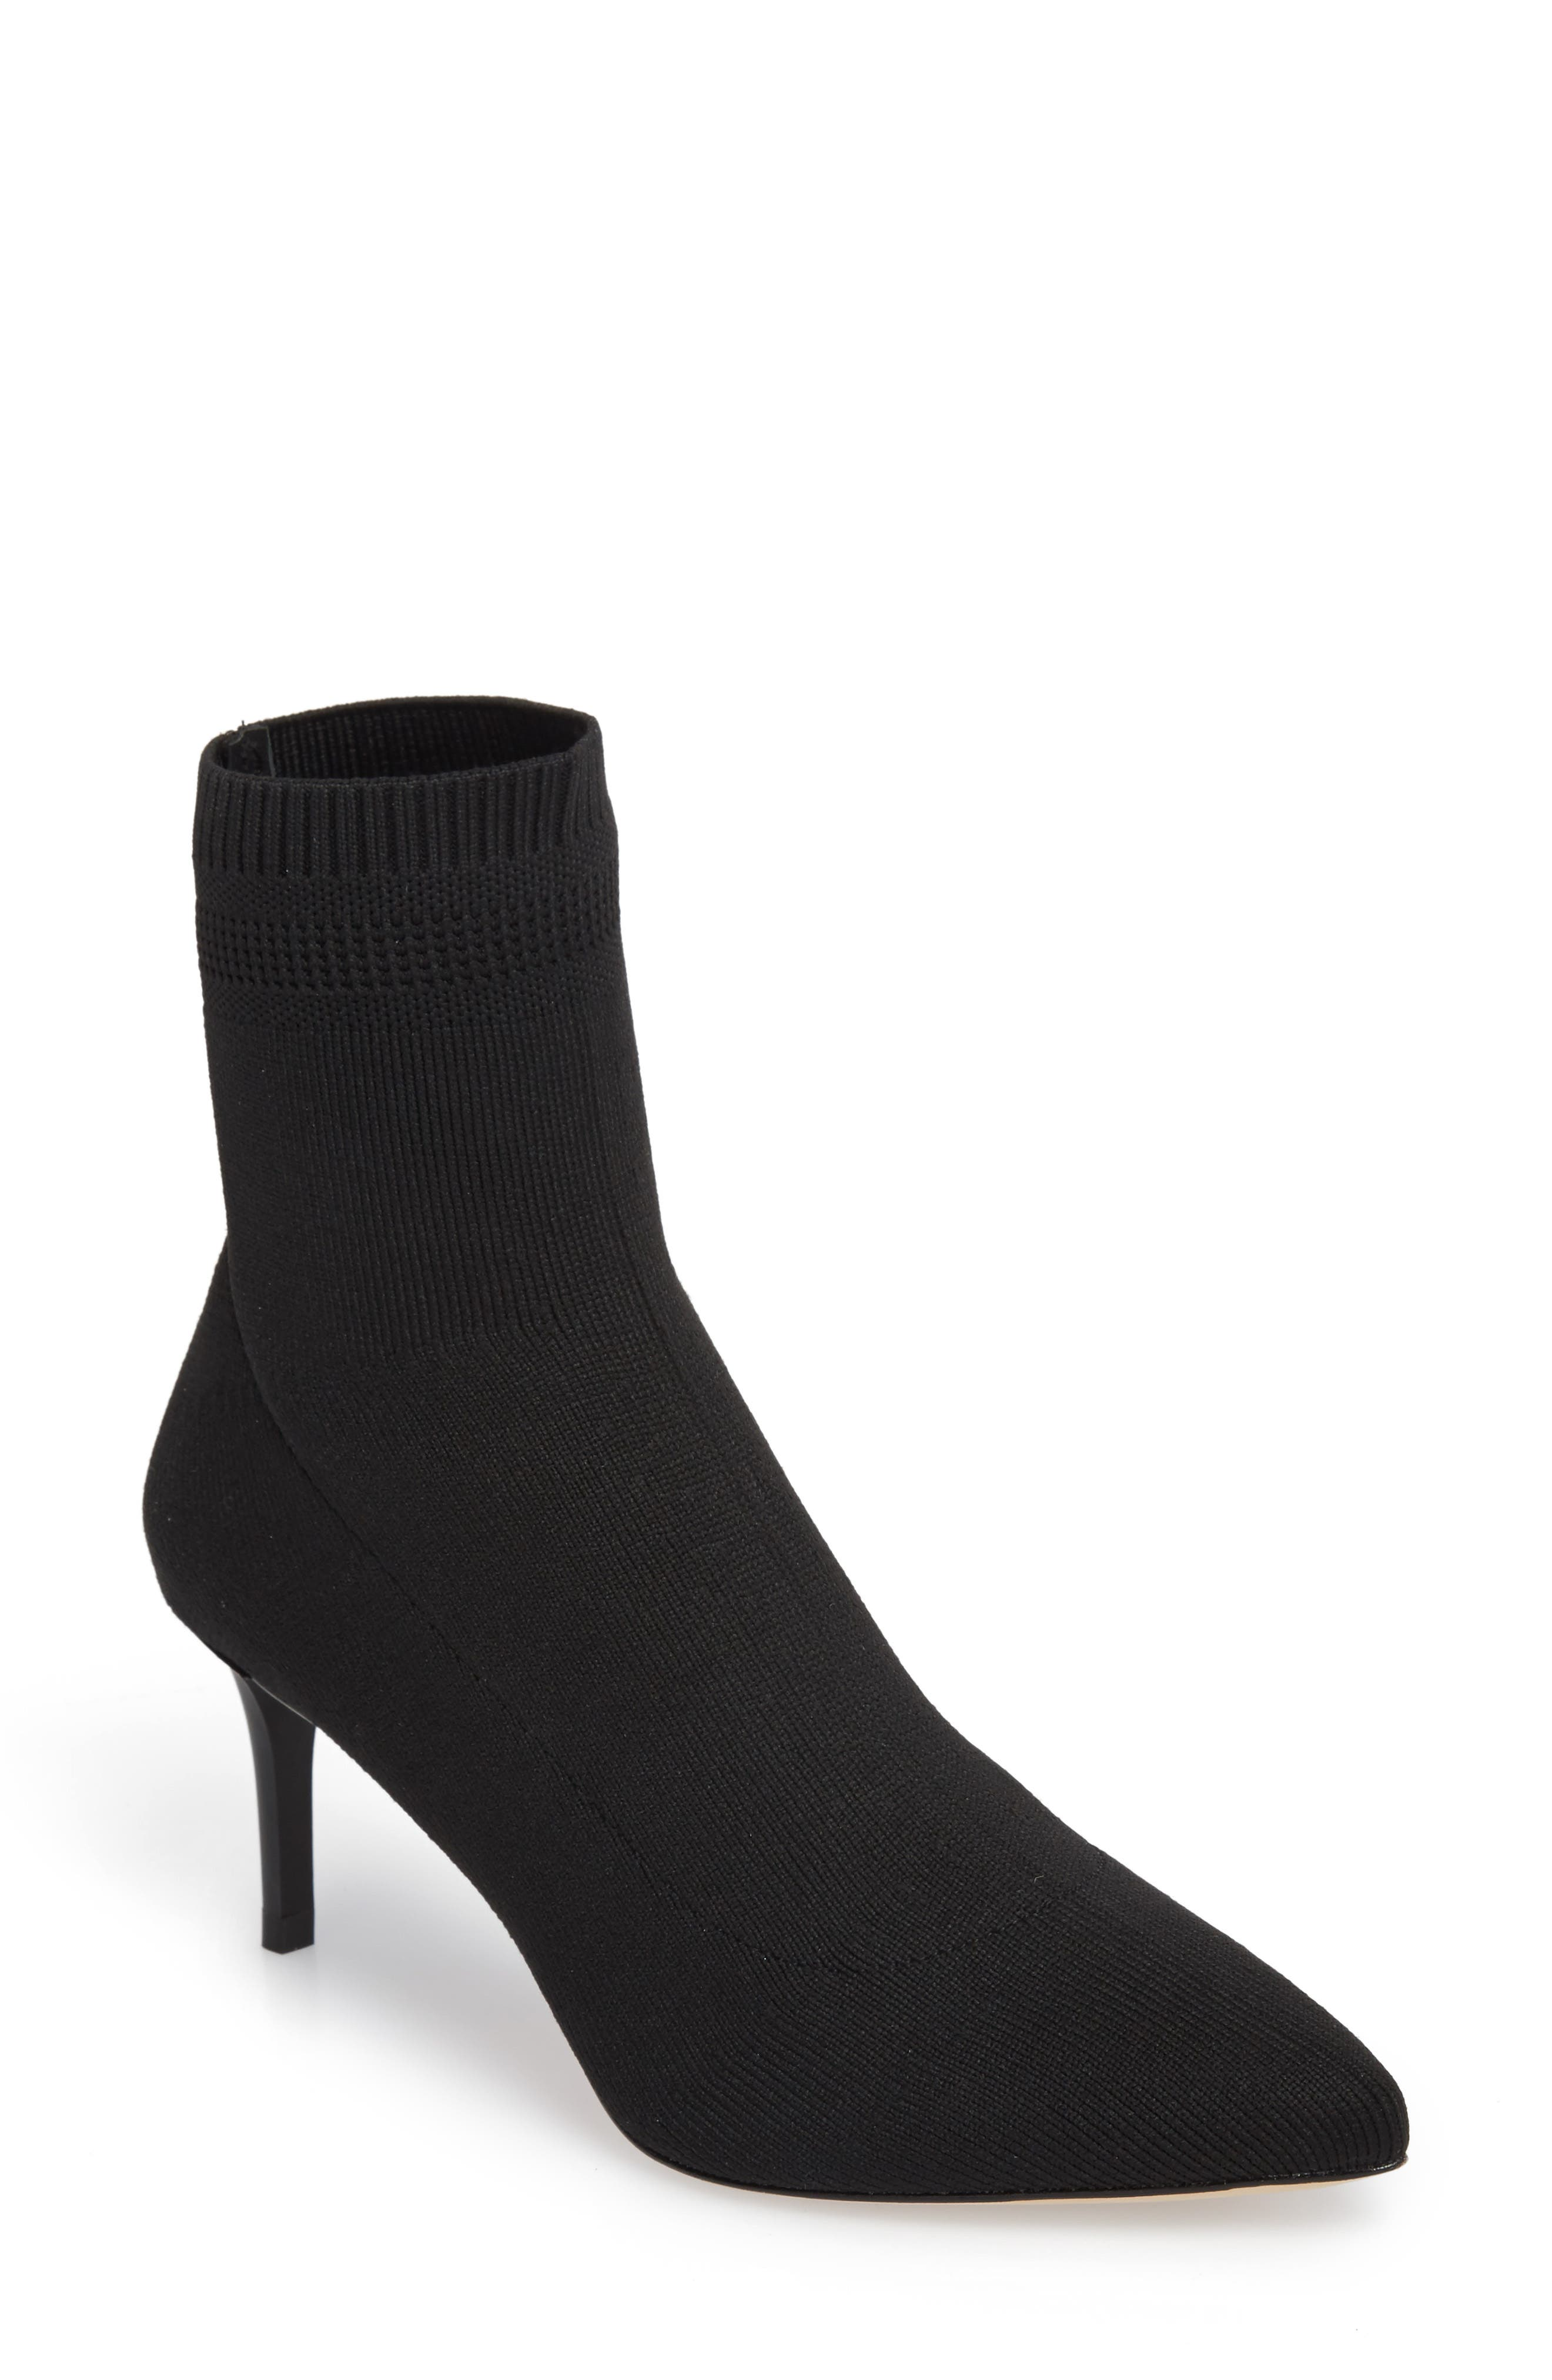 Daphne Bootie,                             Main thumbnail 1, color,                             Black